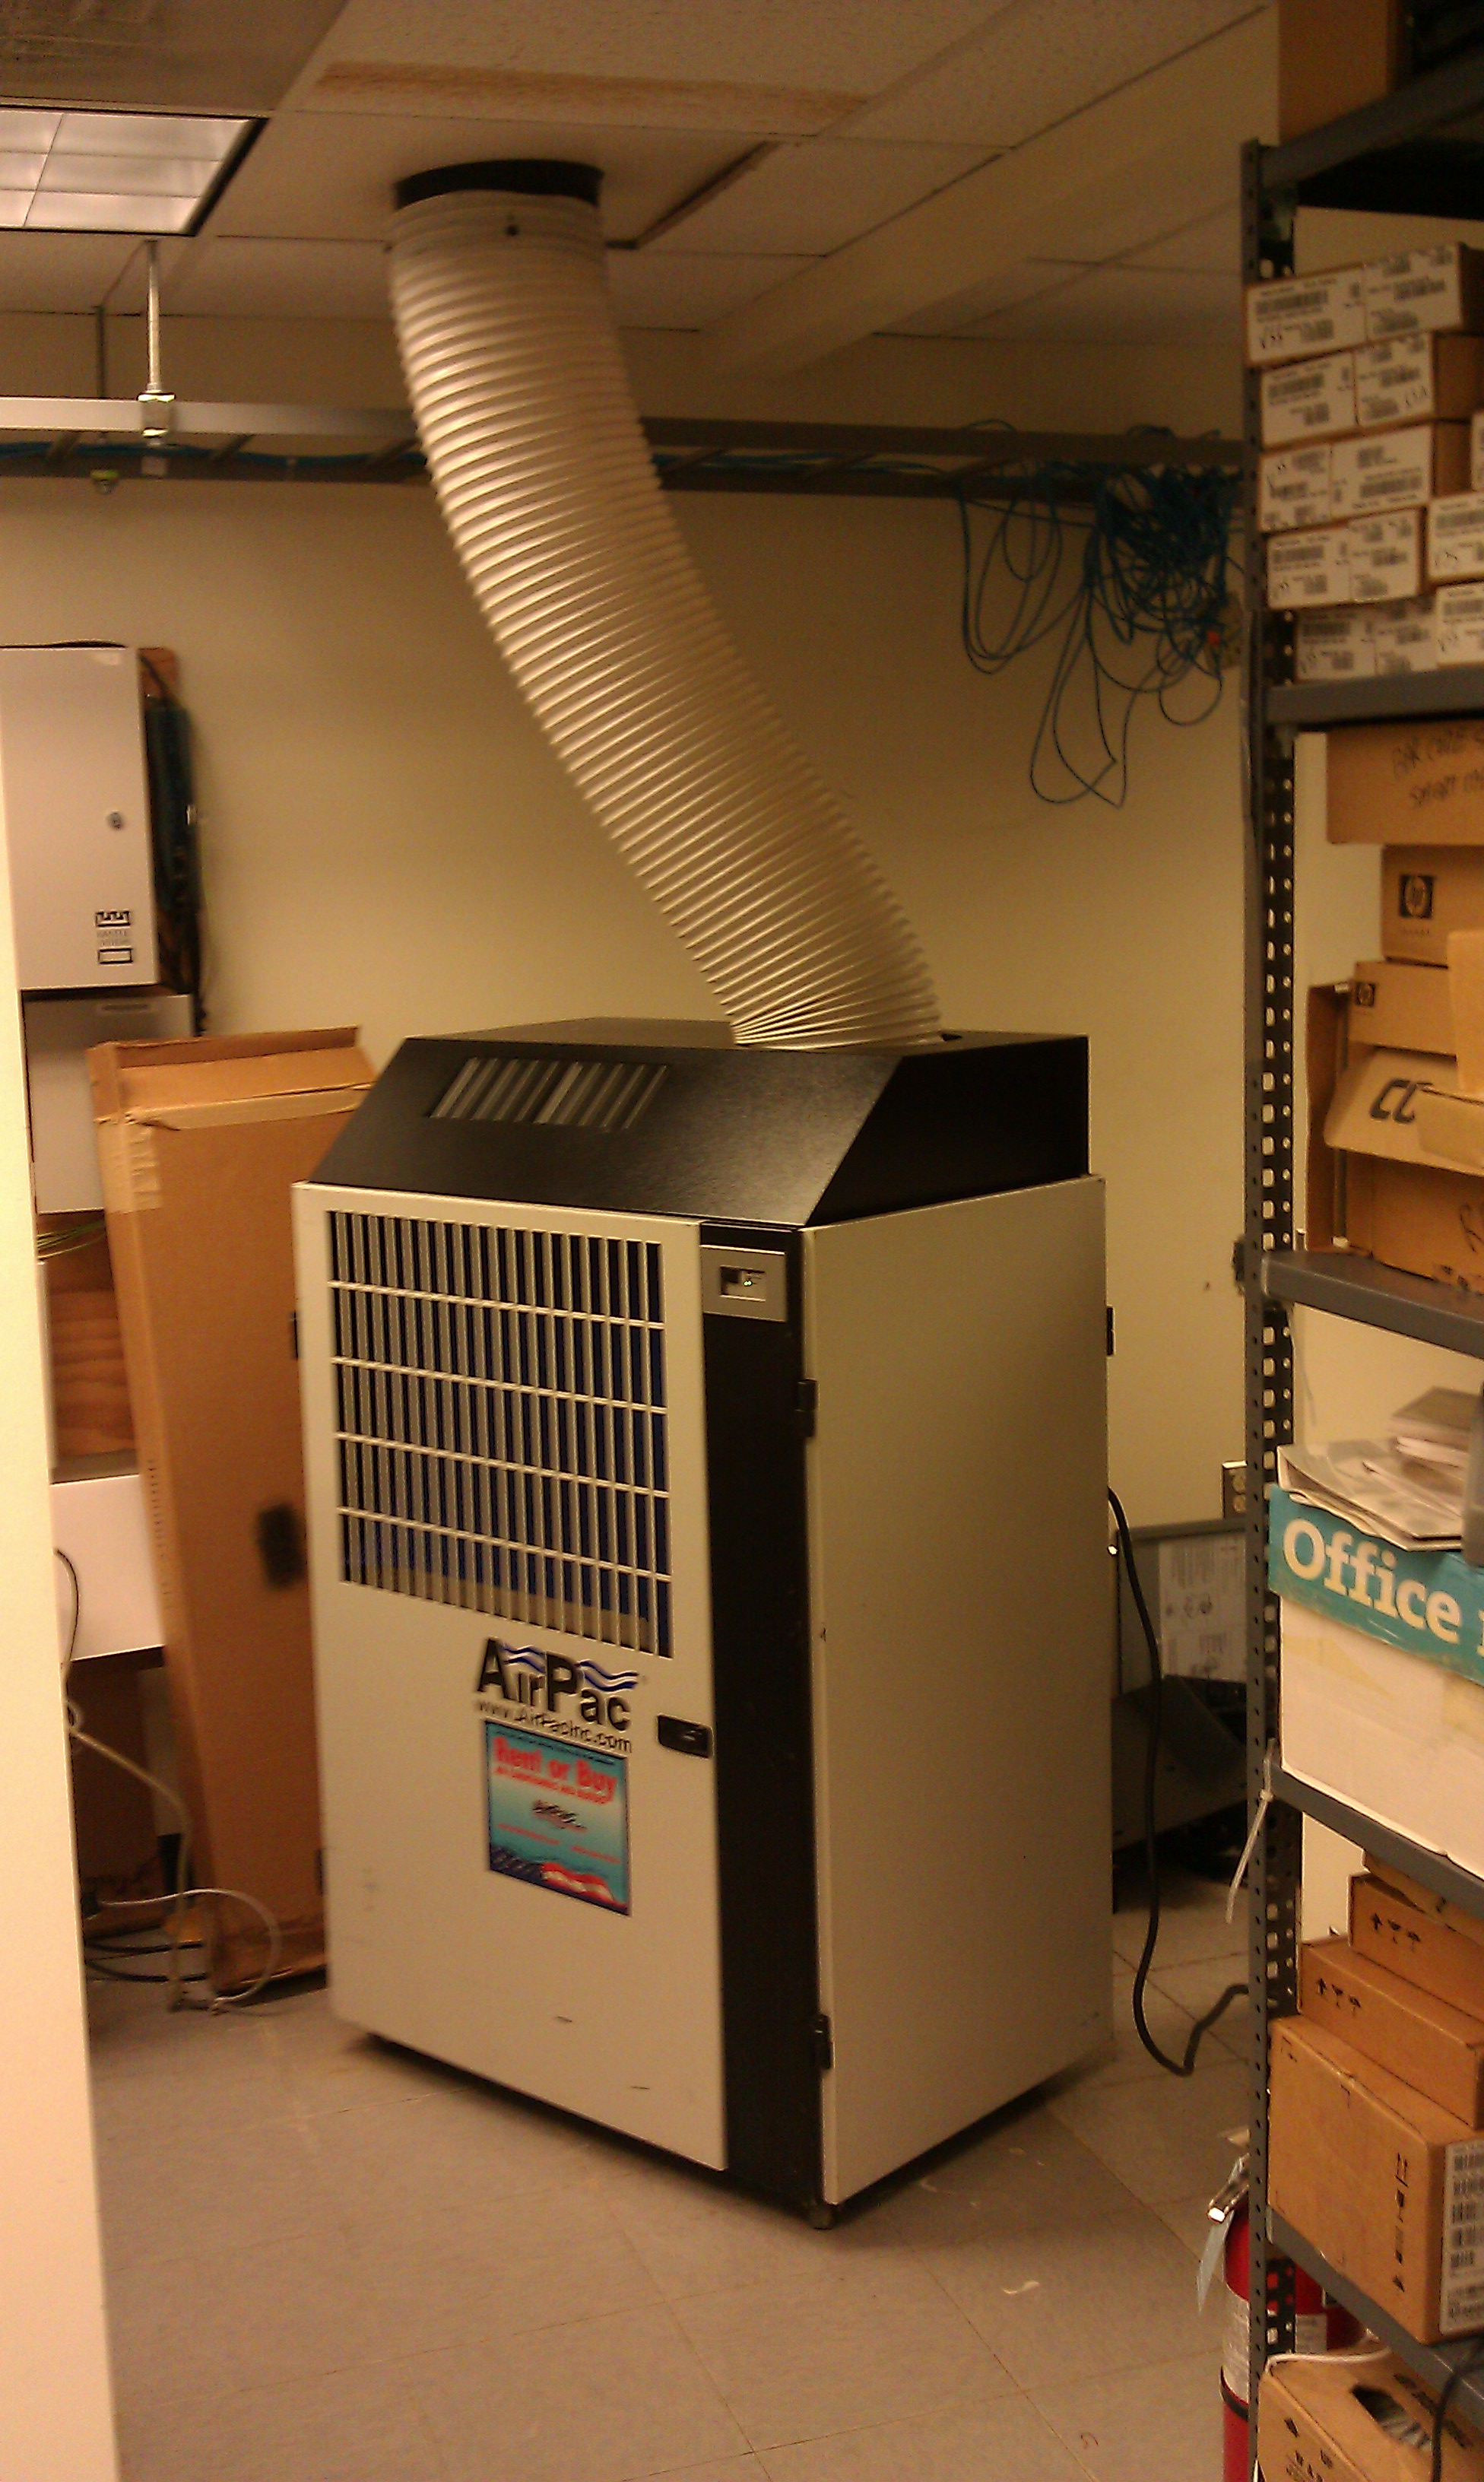 Portable Air Conditioner Low Cost Cooling Option For